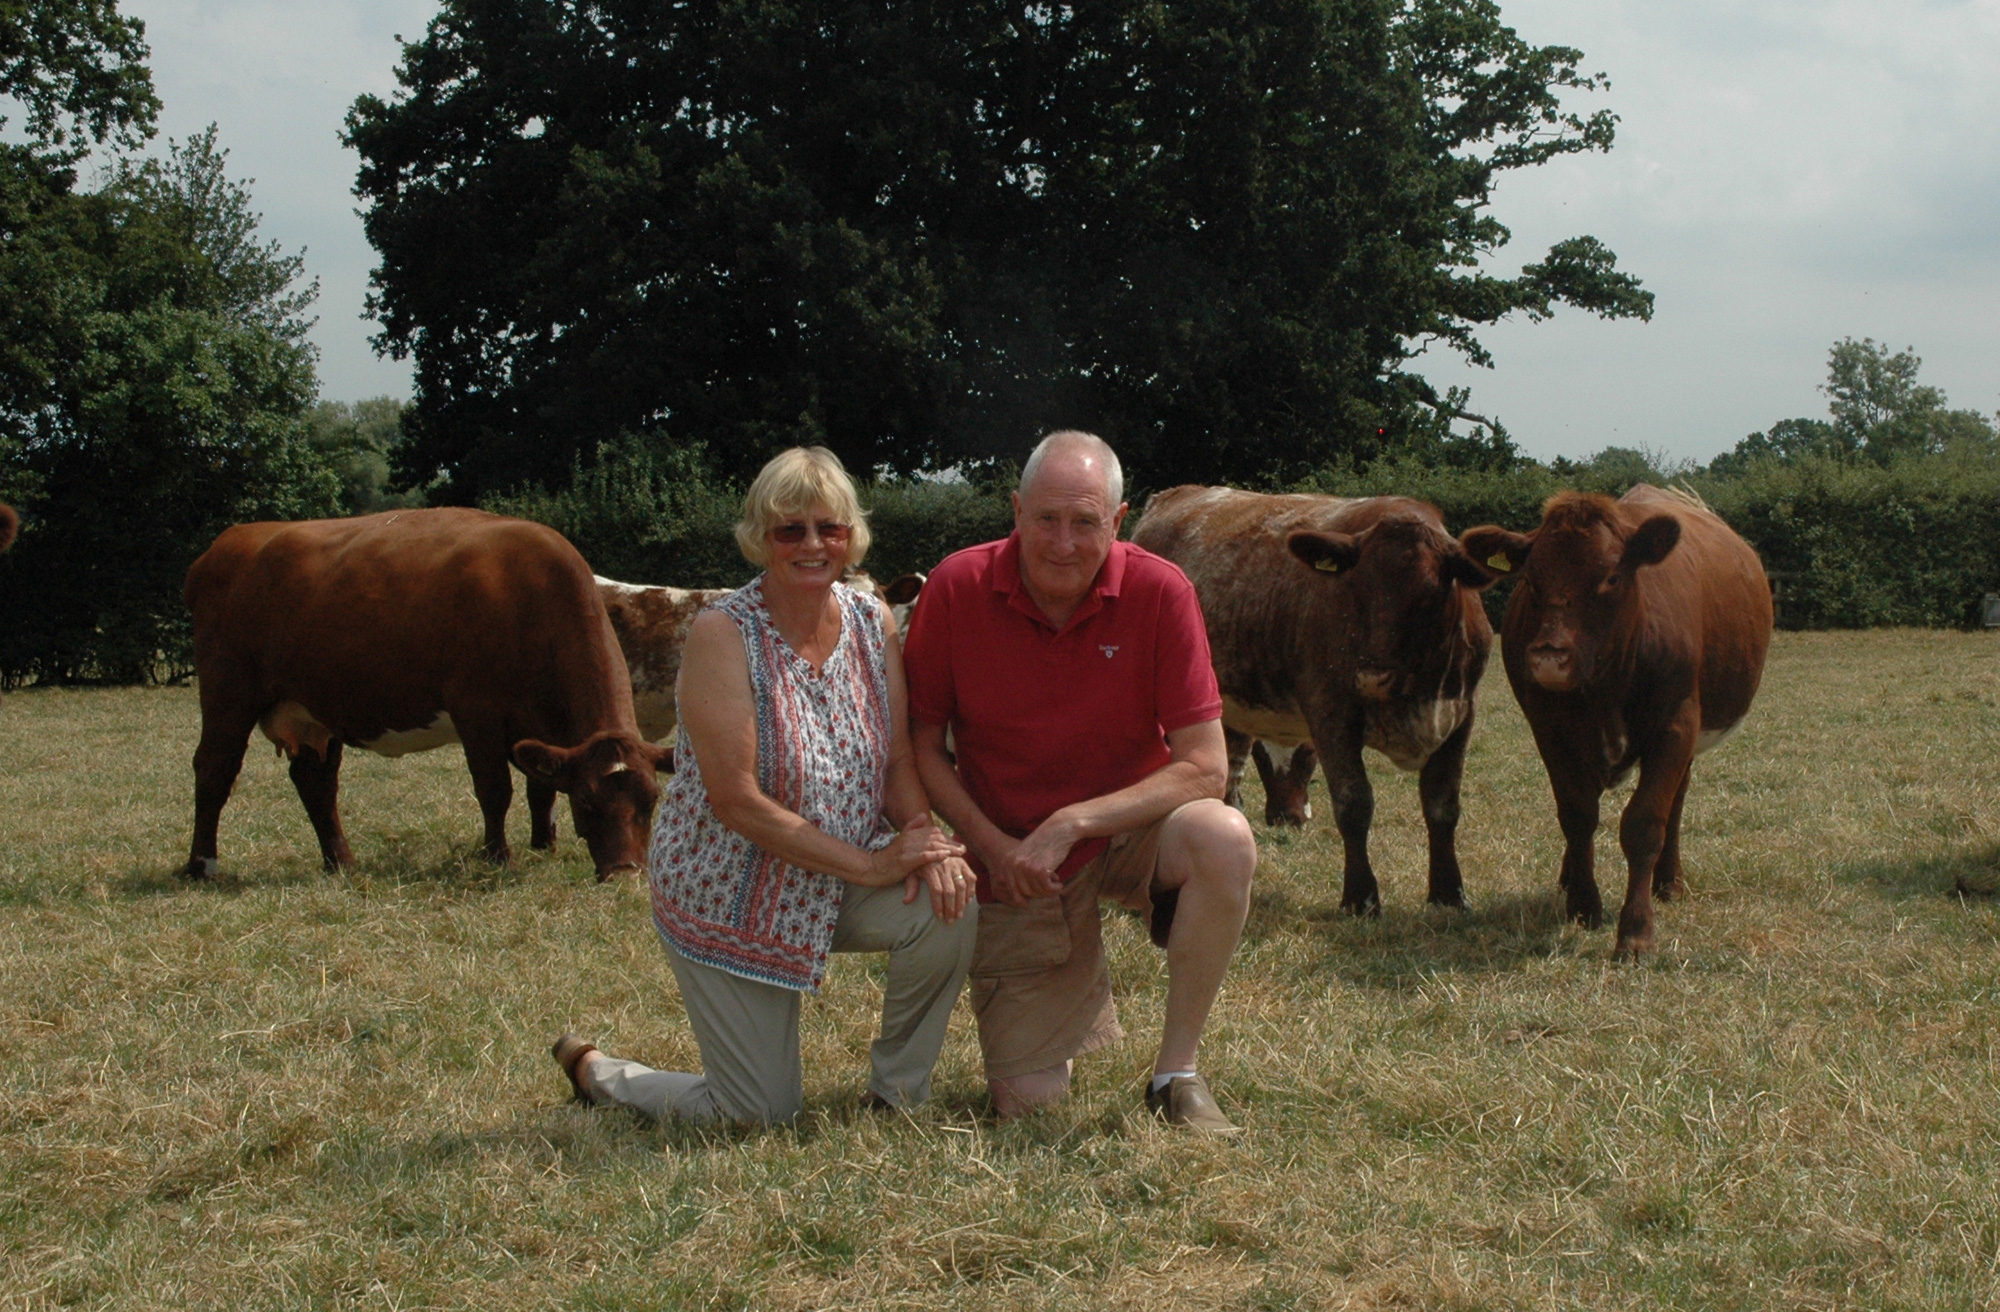 Ian and Nickie Hollows with a portion of their Holkin herd